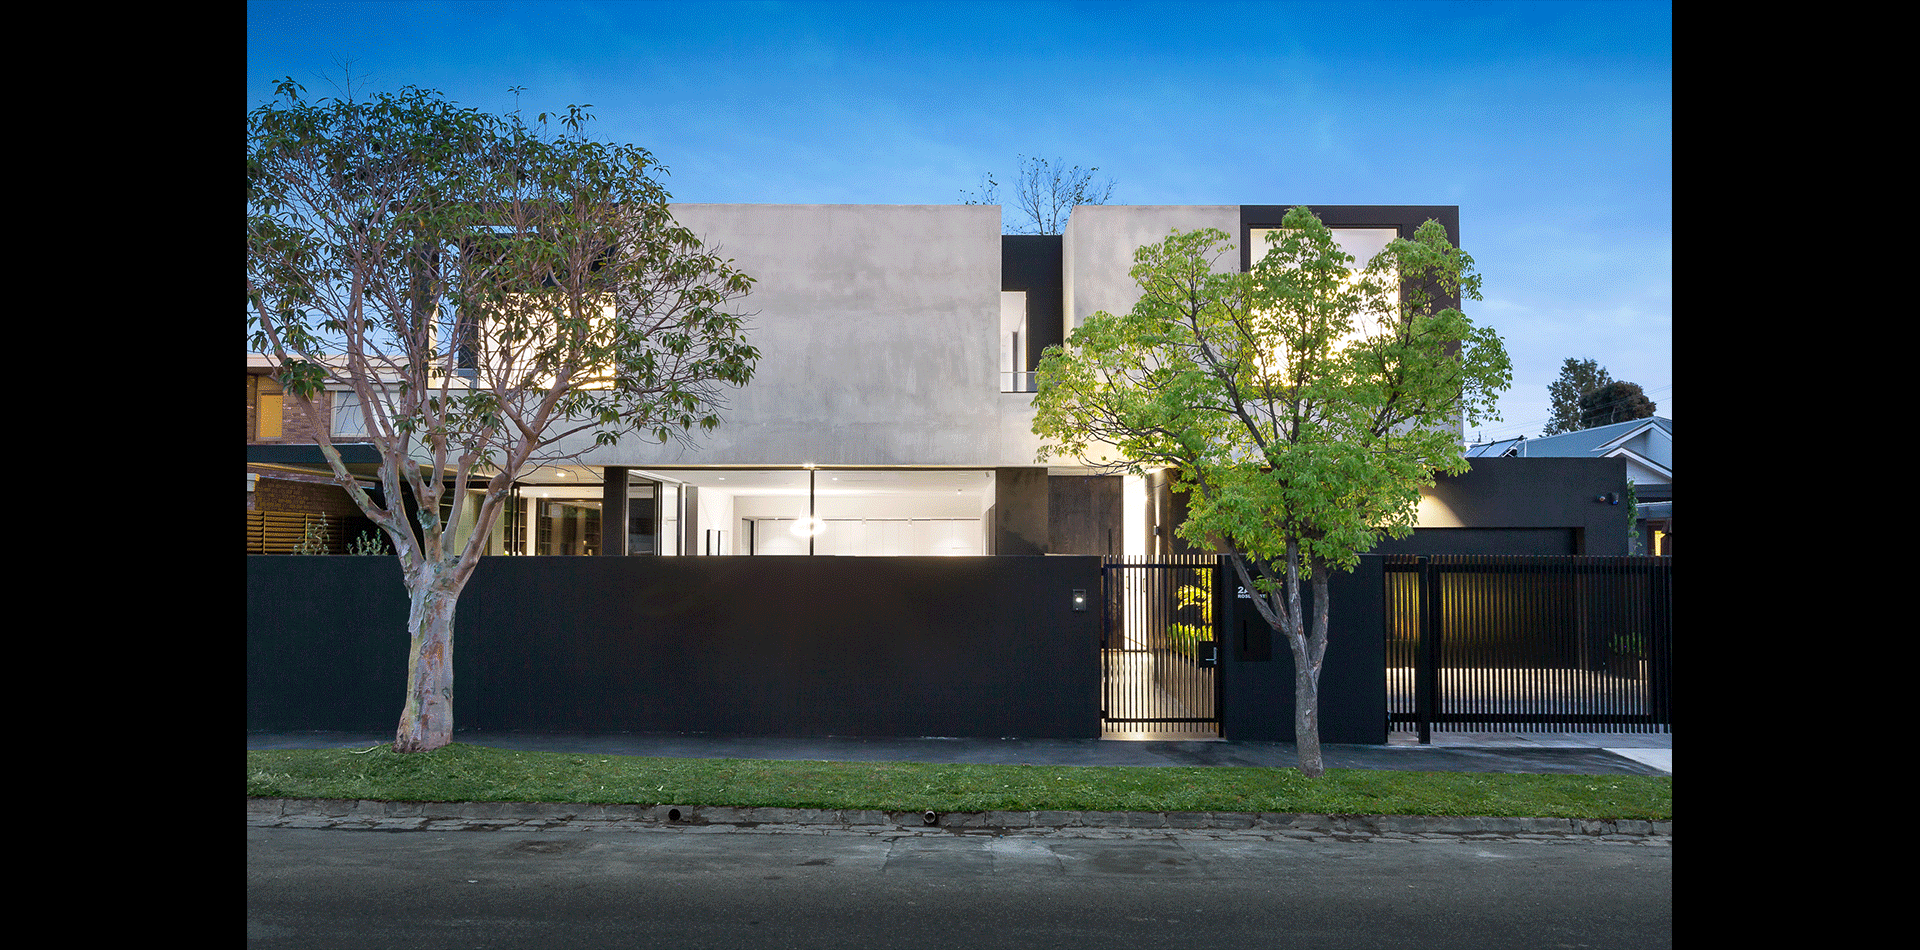 2A Roslyn St - exterior